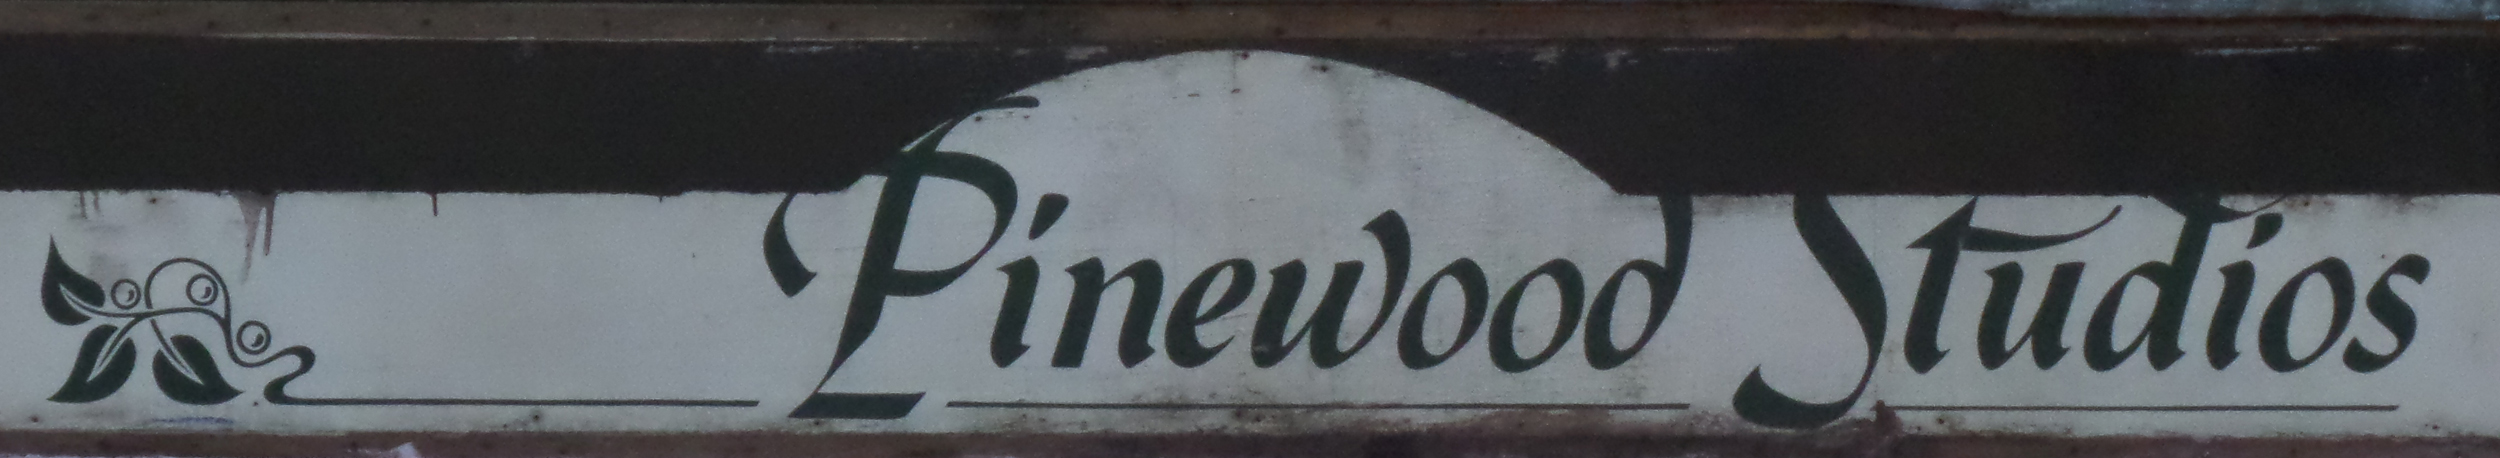 Pinewood Studios (now Sweet Delights)